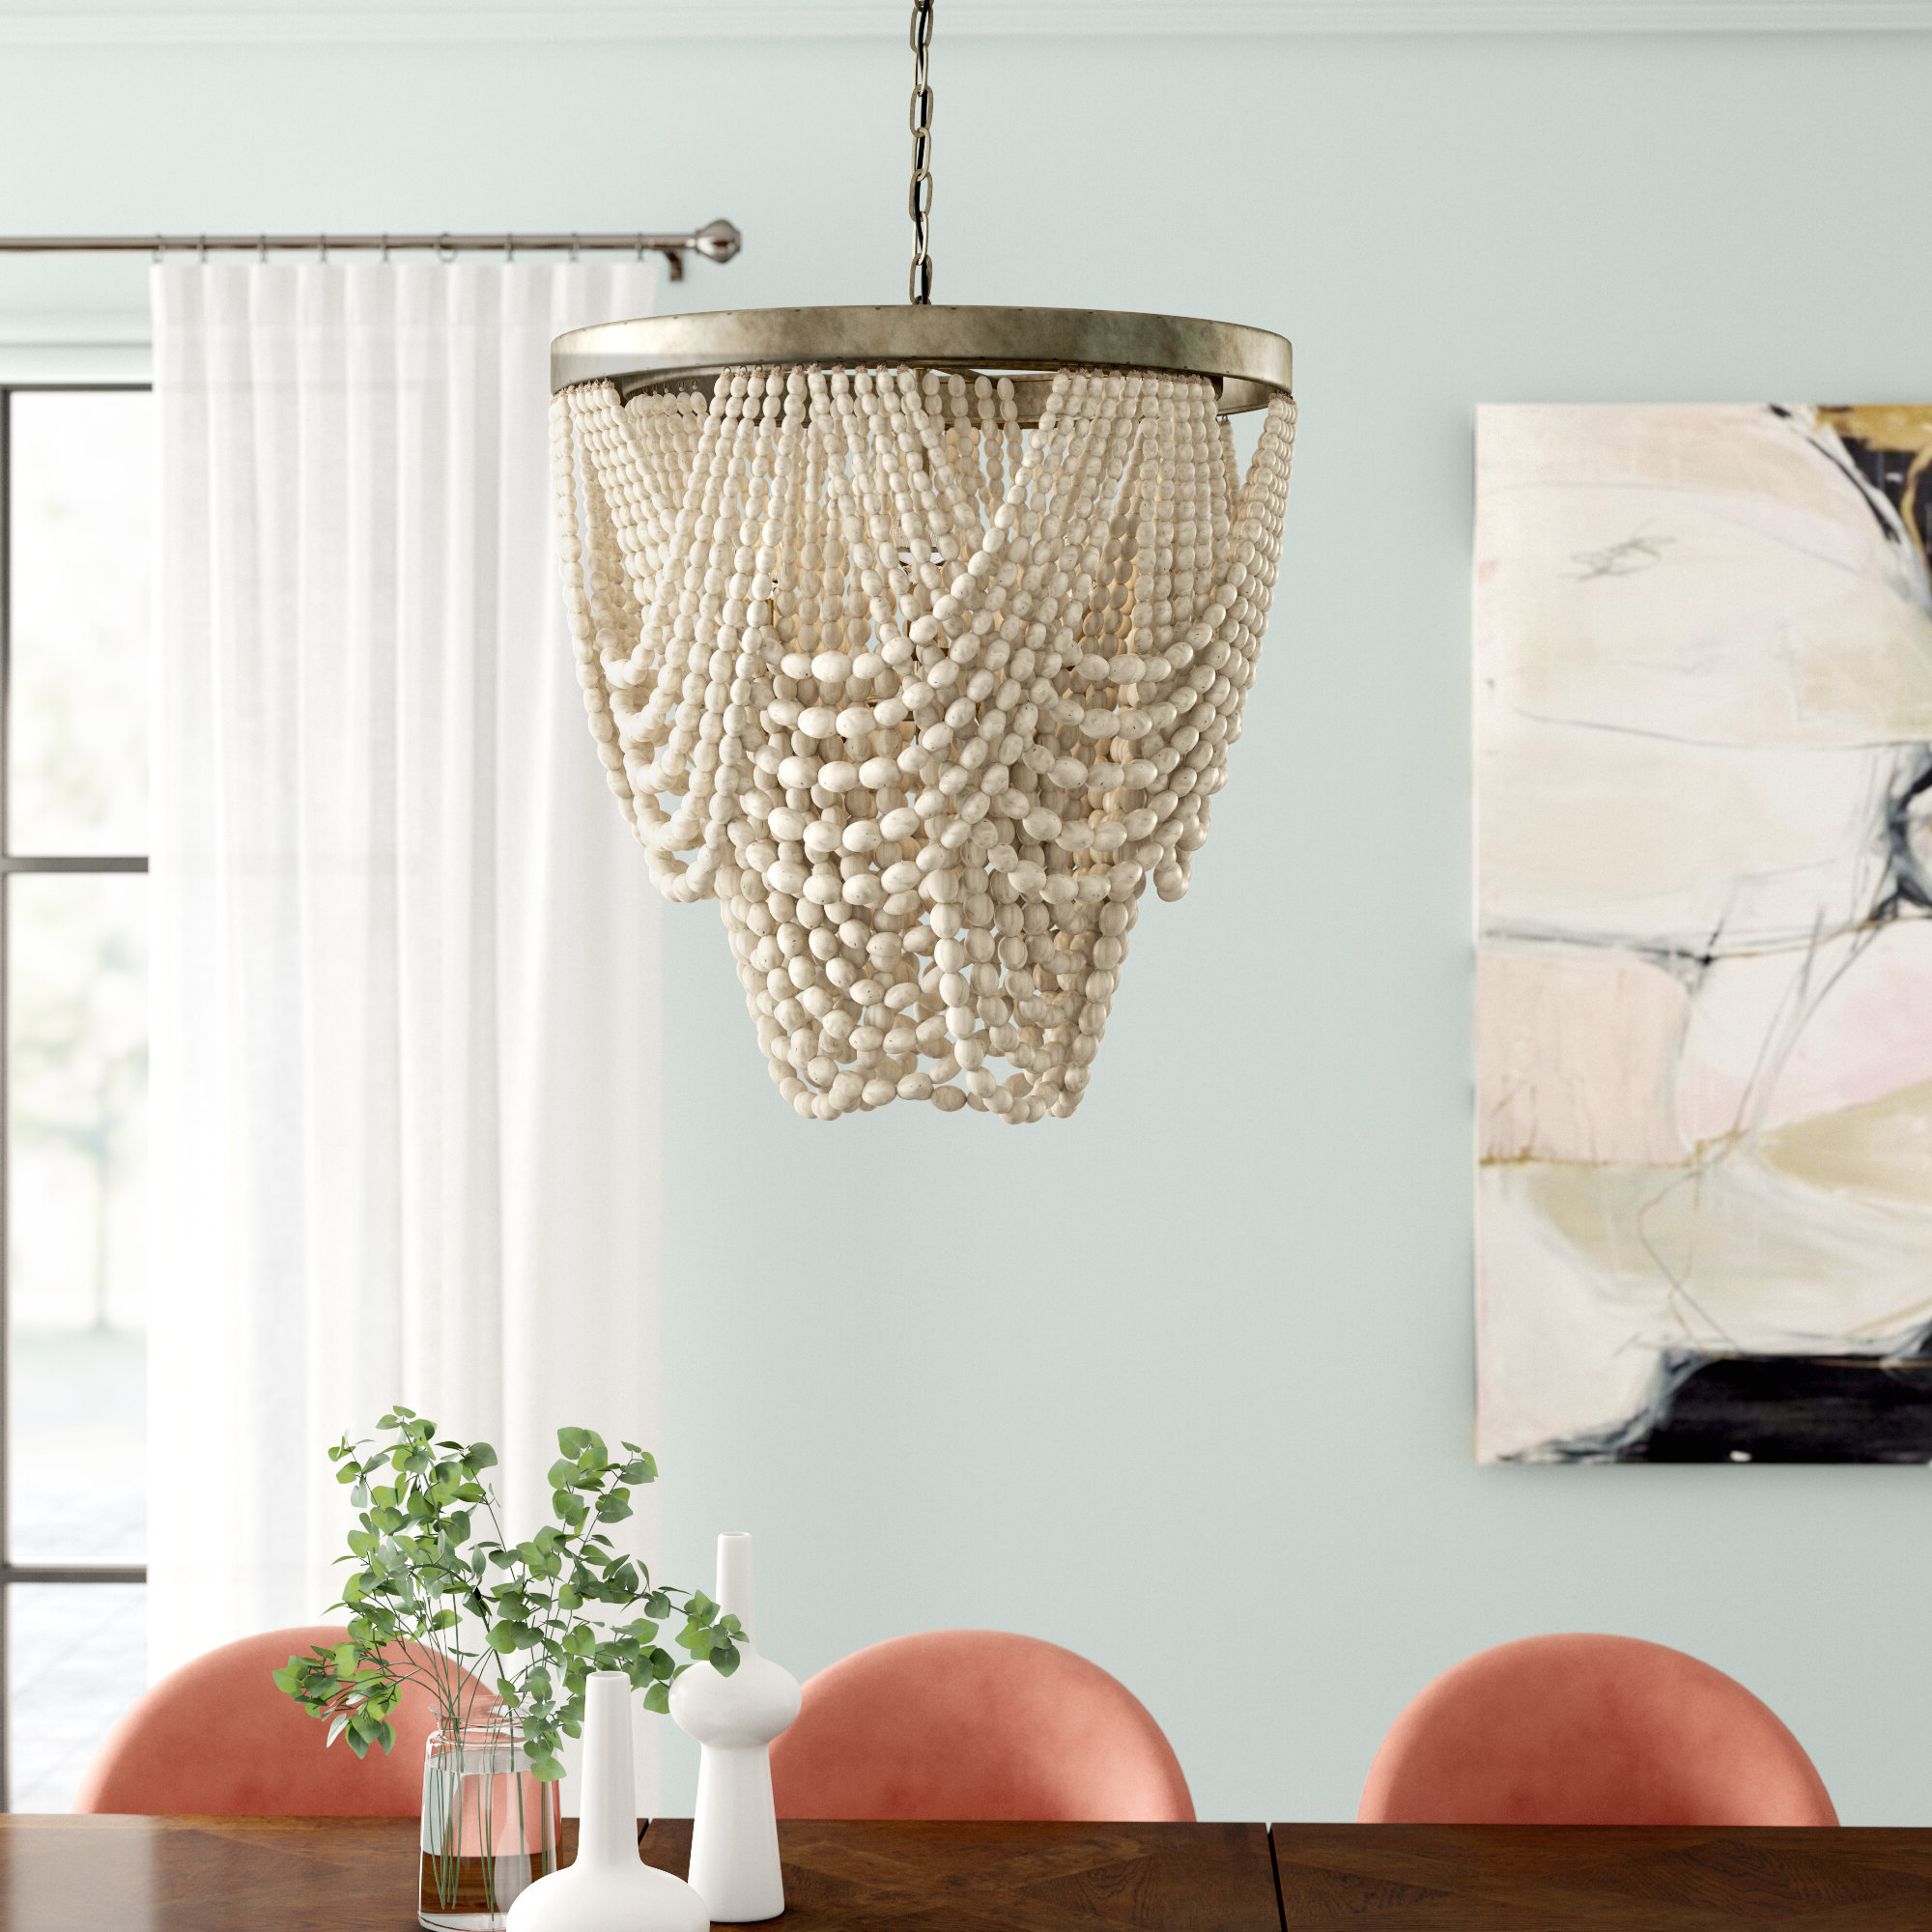 Hatfield 3 Light Novelty Chandeliers Within Most Popular Hatfield 3 Light Novelty Chandelier (View 4 of 20)